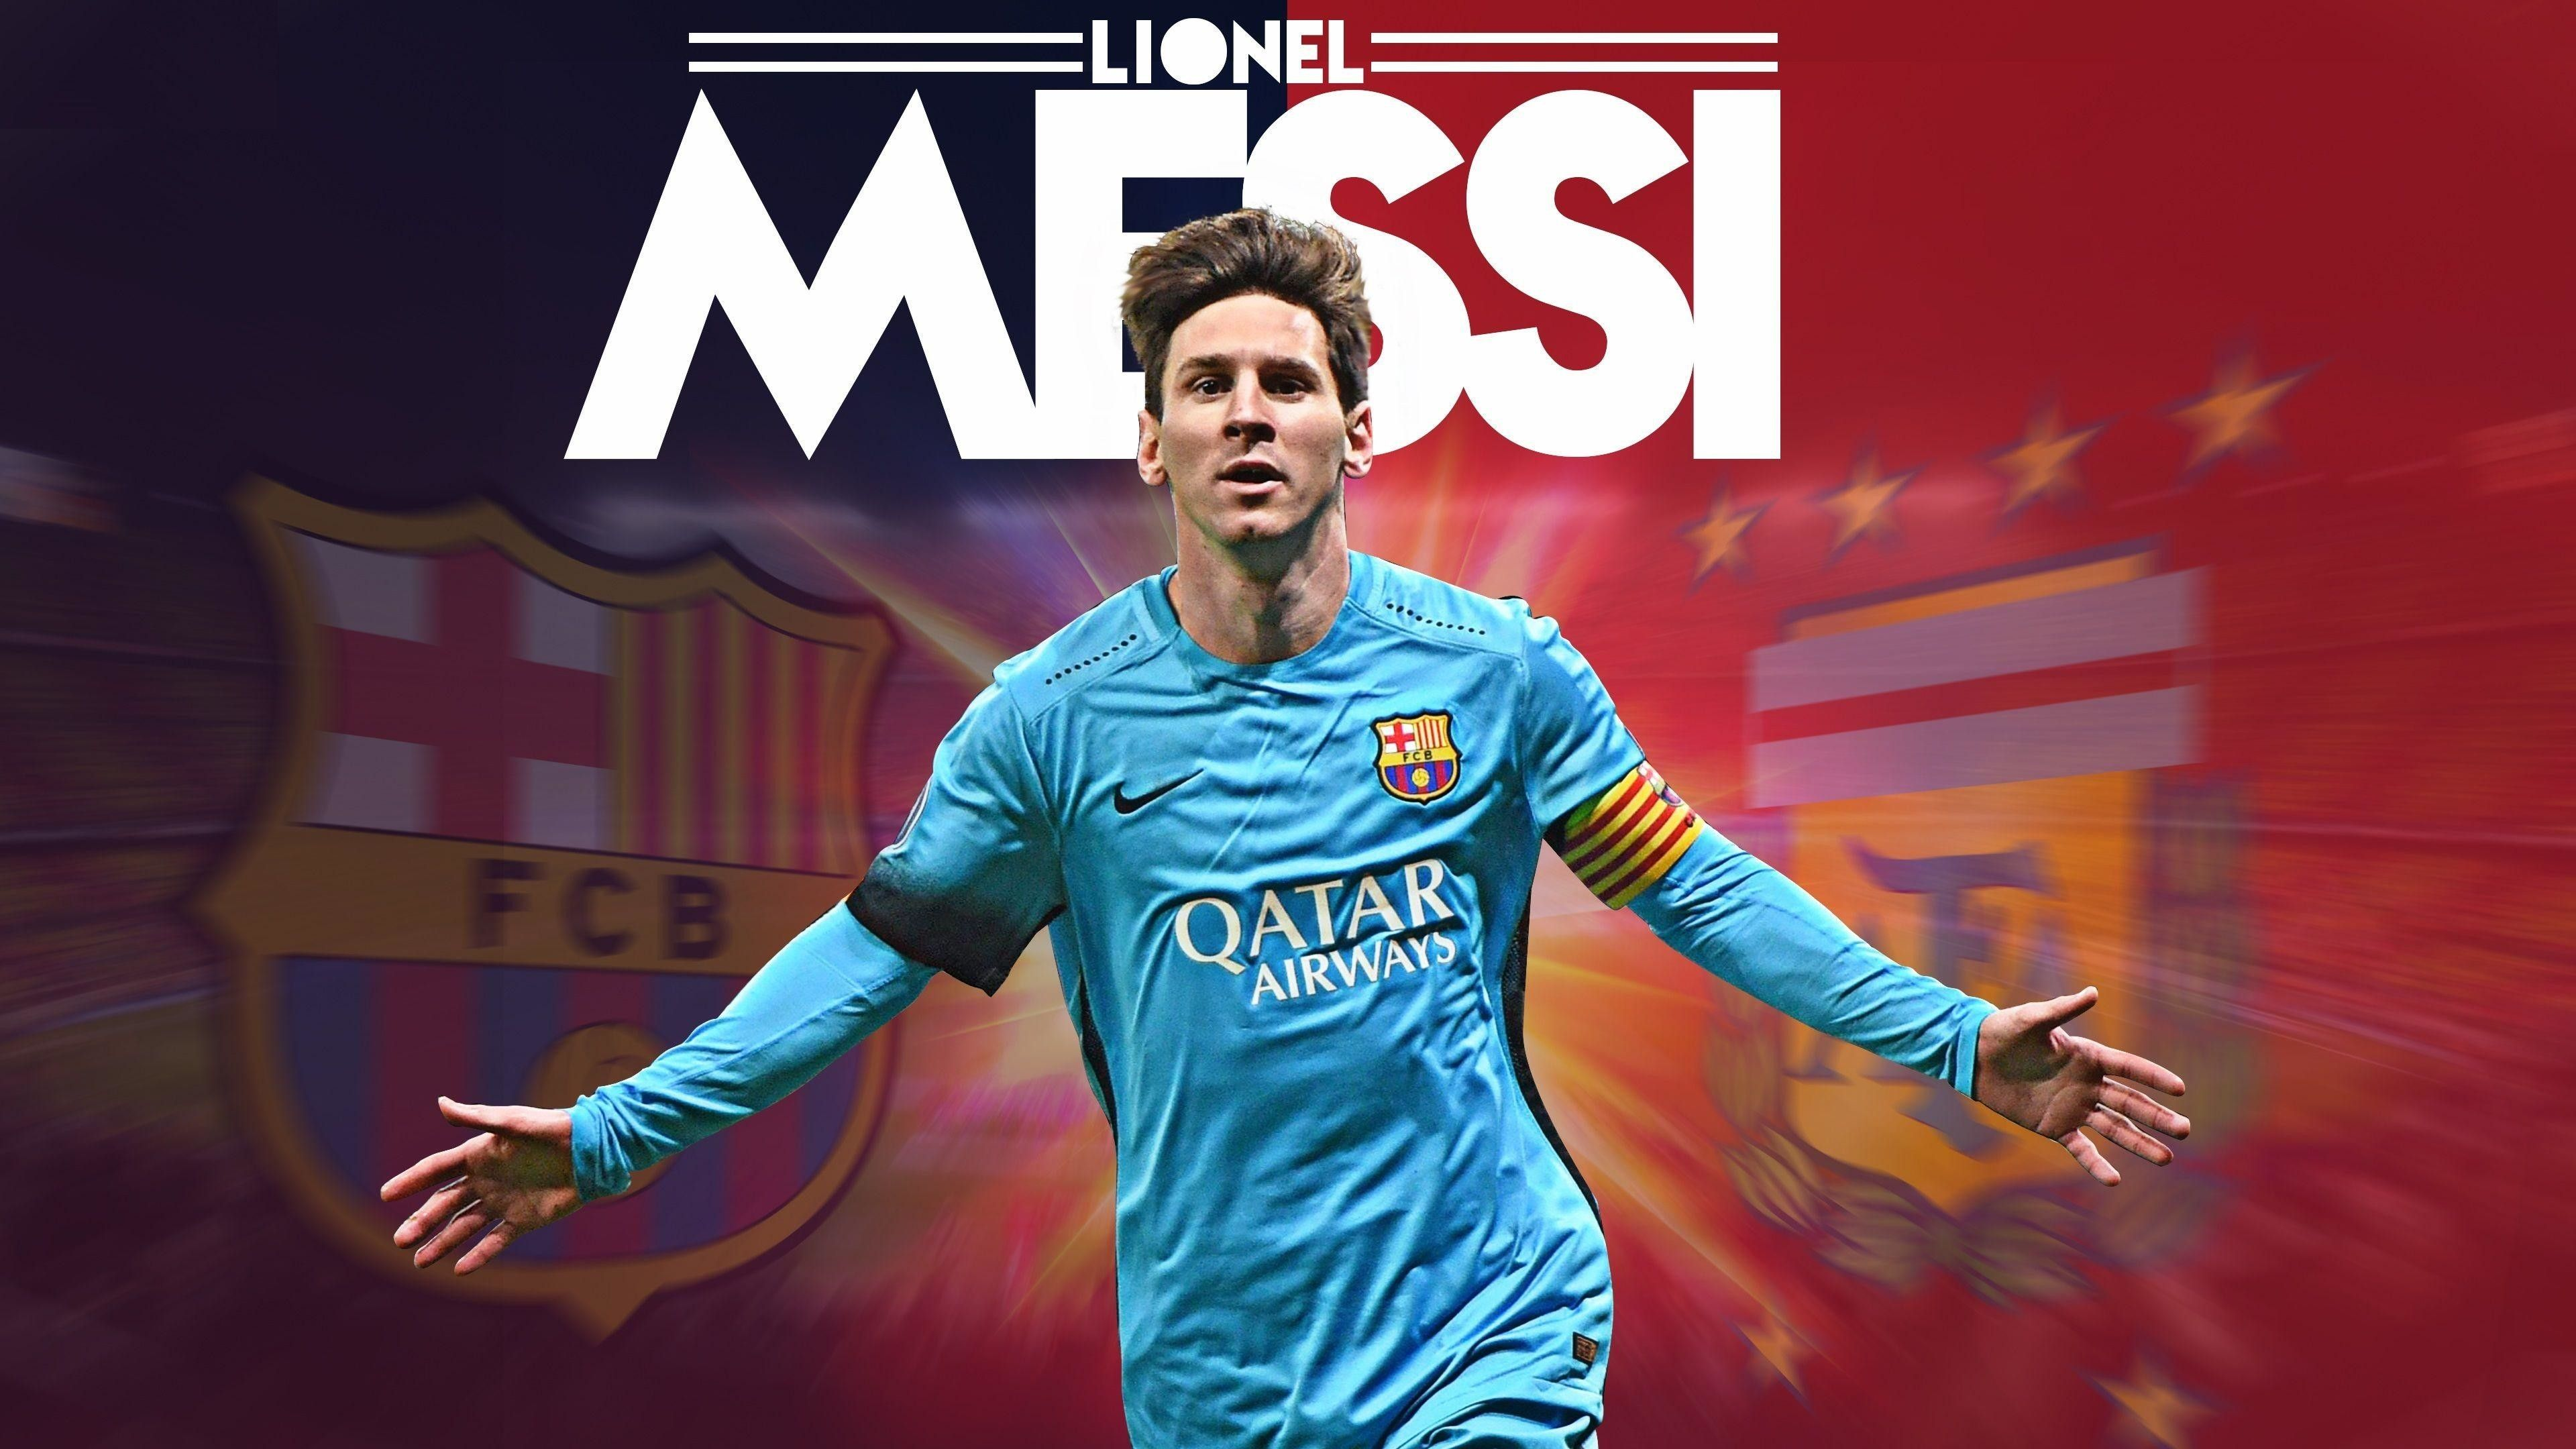 Lionel Messi Fcb Hd 4k In 2020 Lionel Messi Wallpapers Lionel Messi Messi